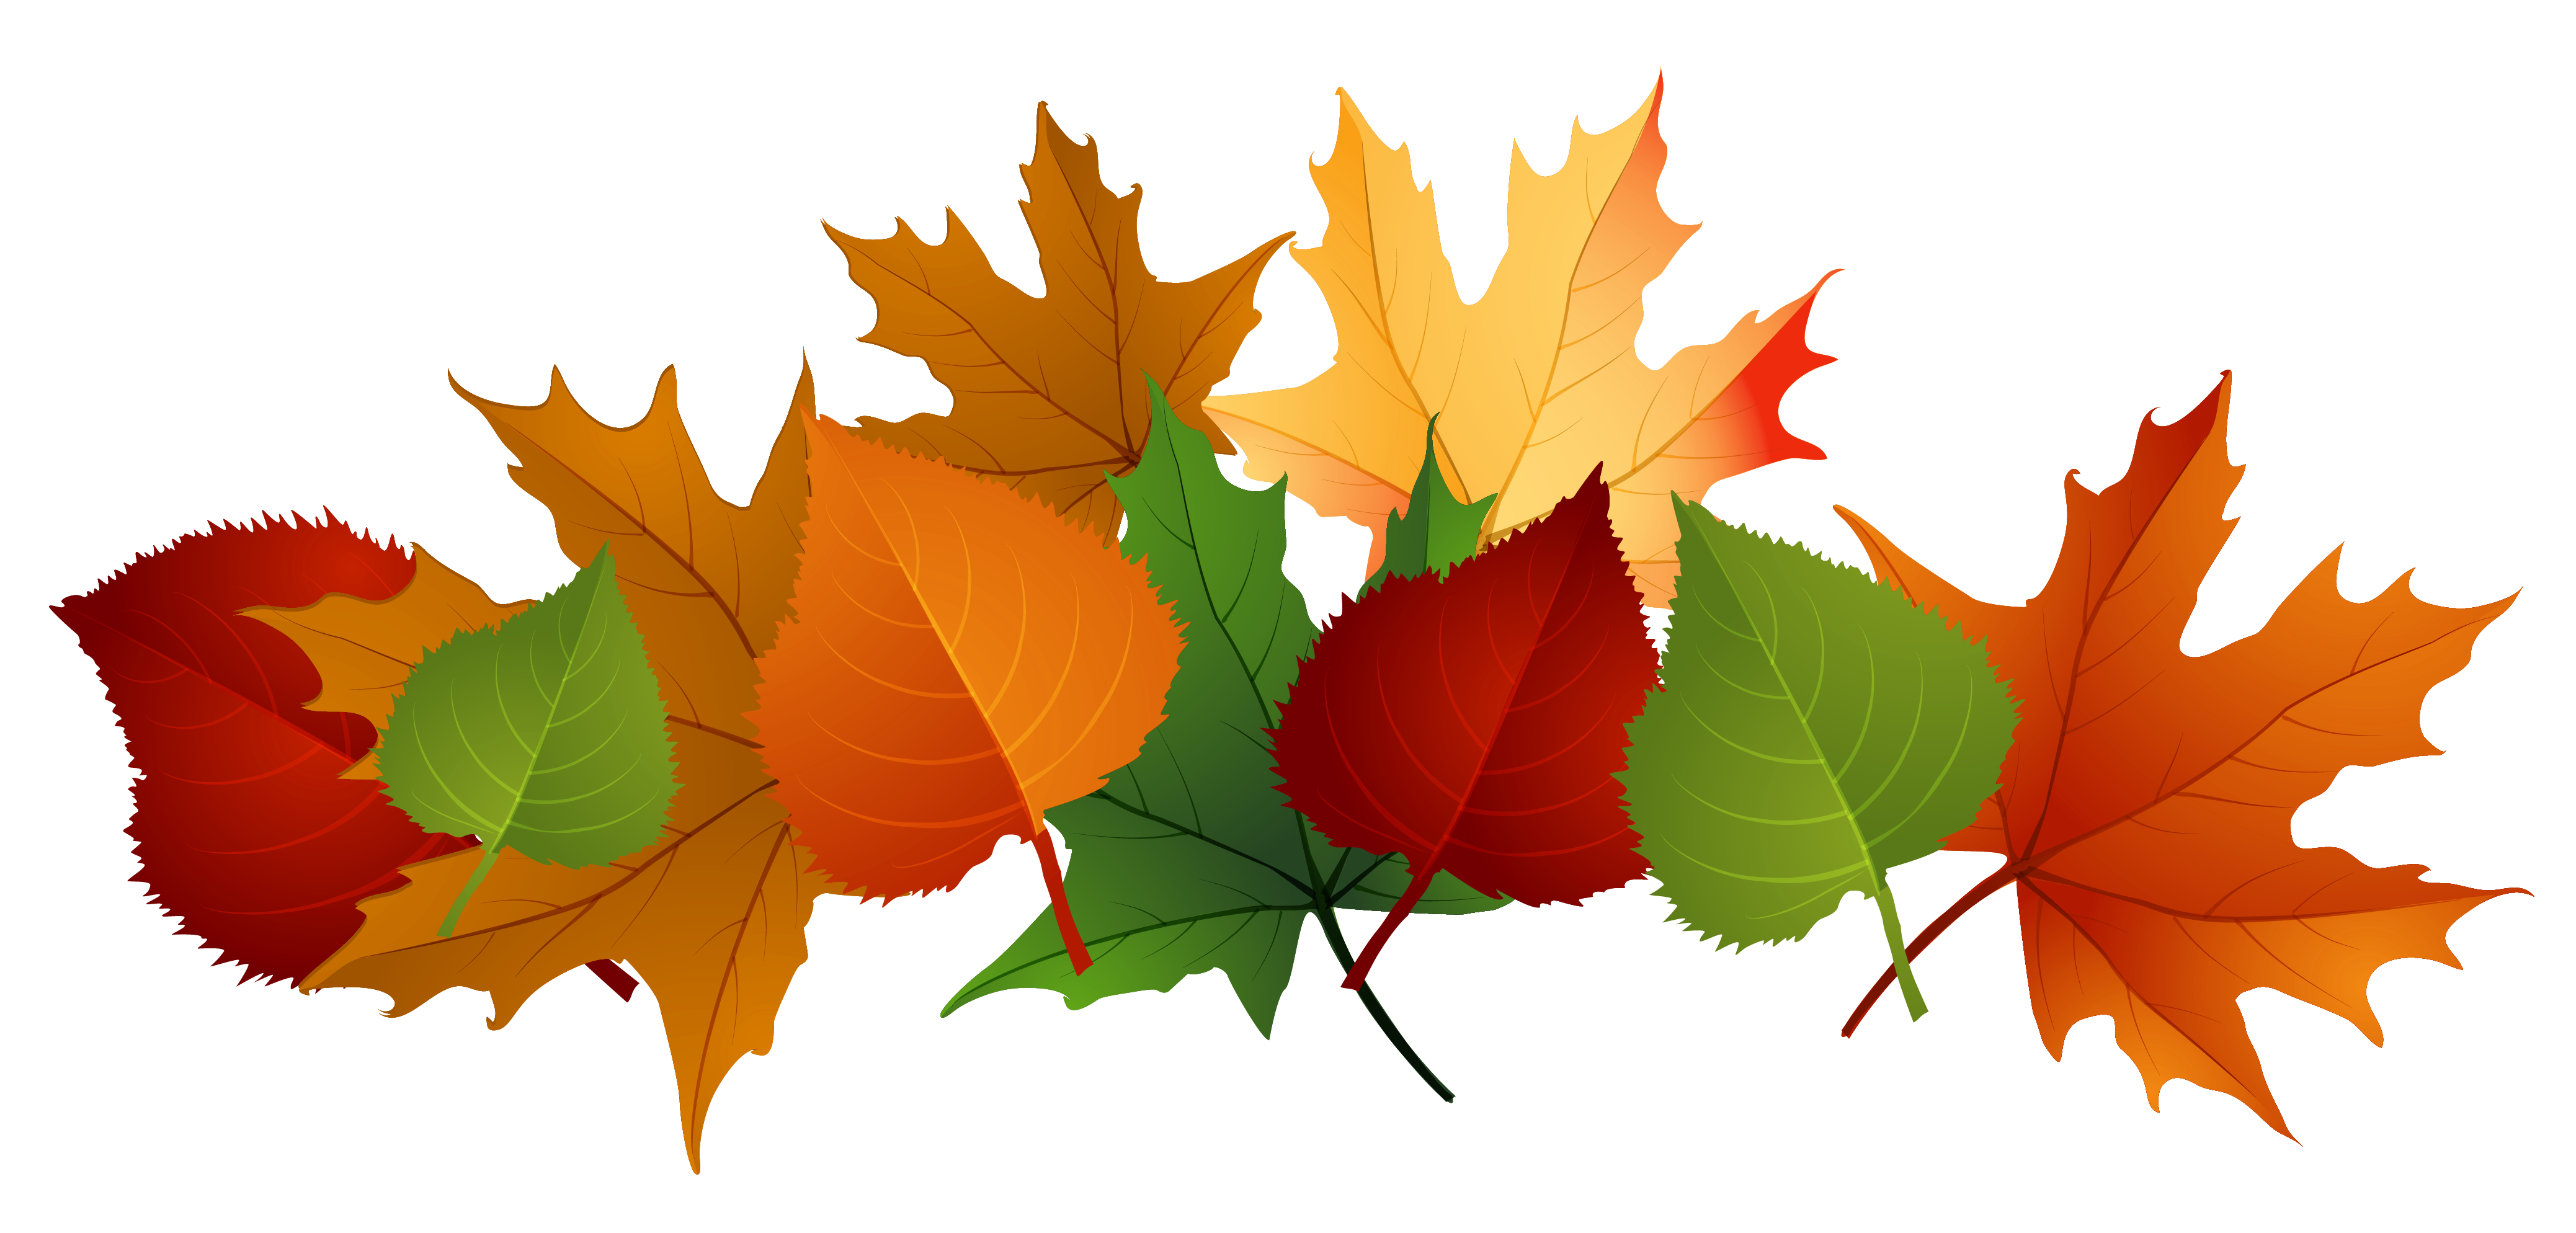 Fall thanksgiving clipart autumn